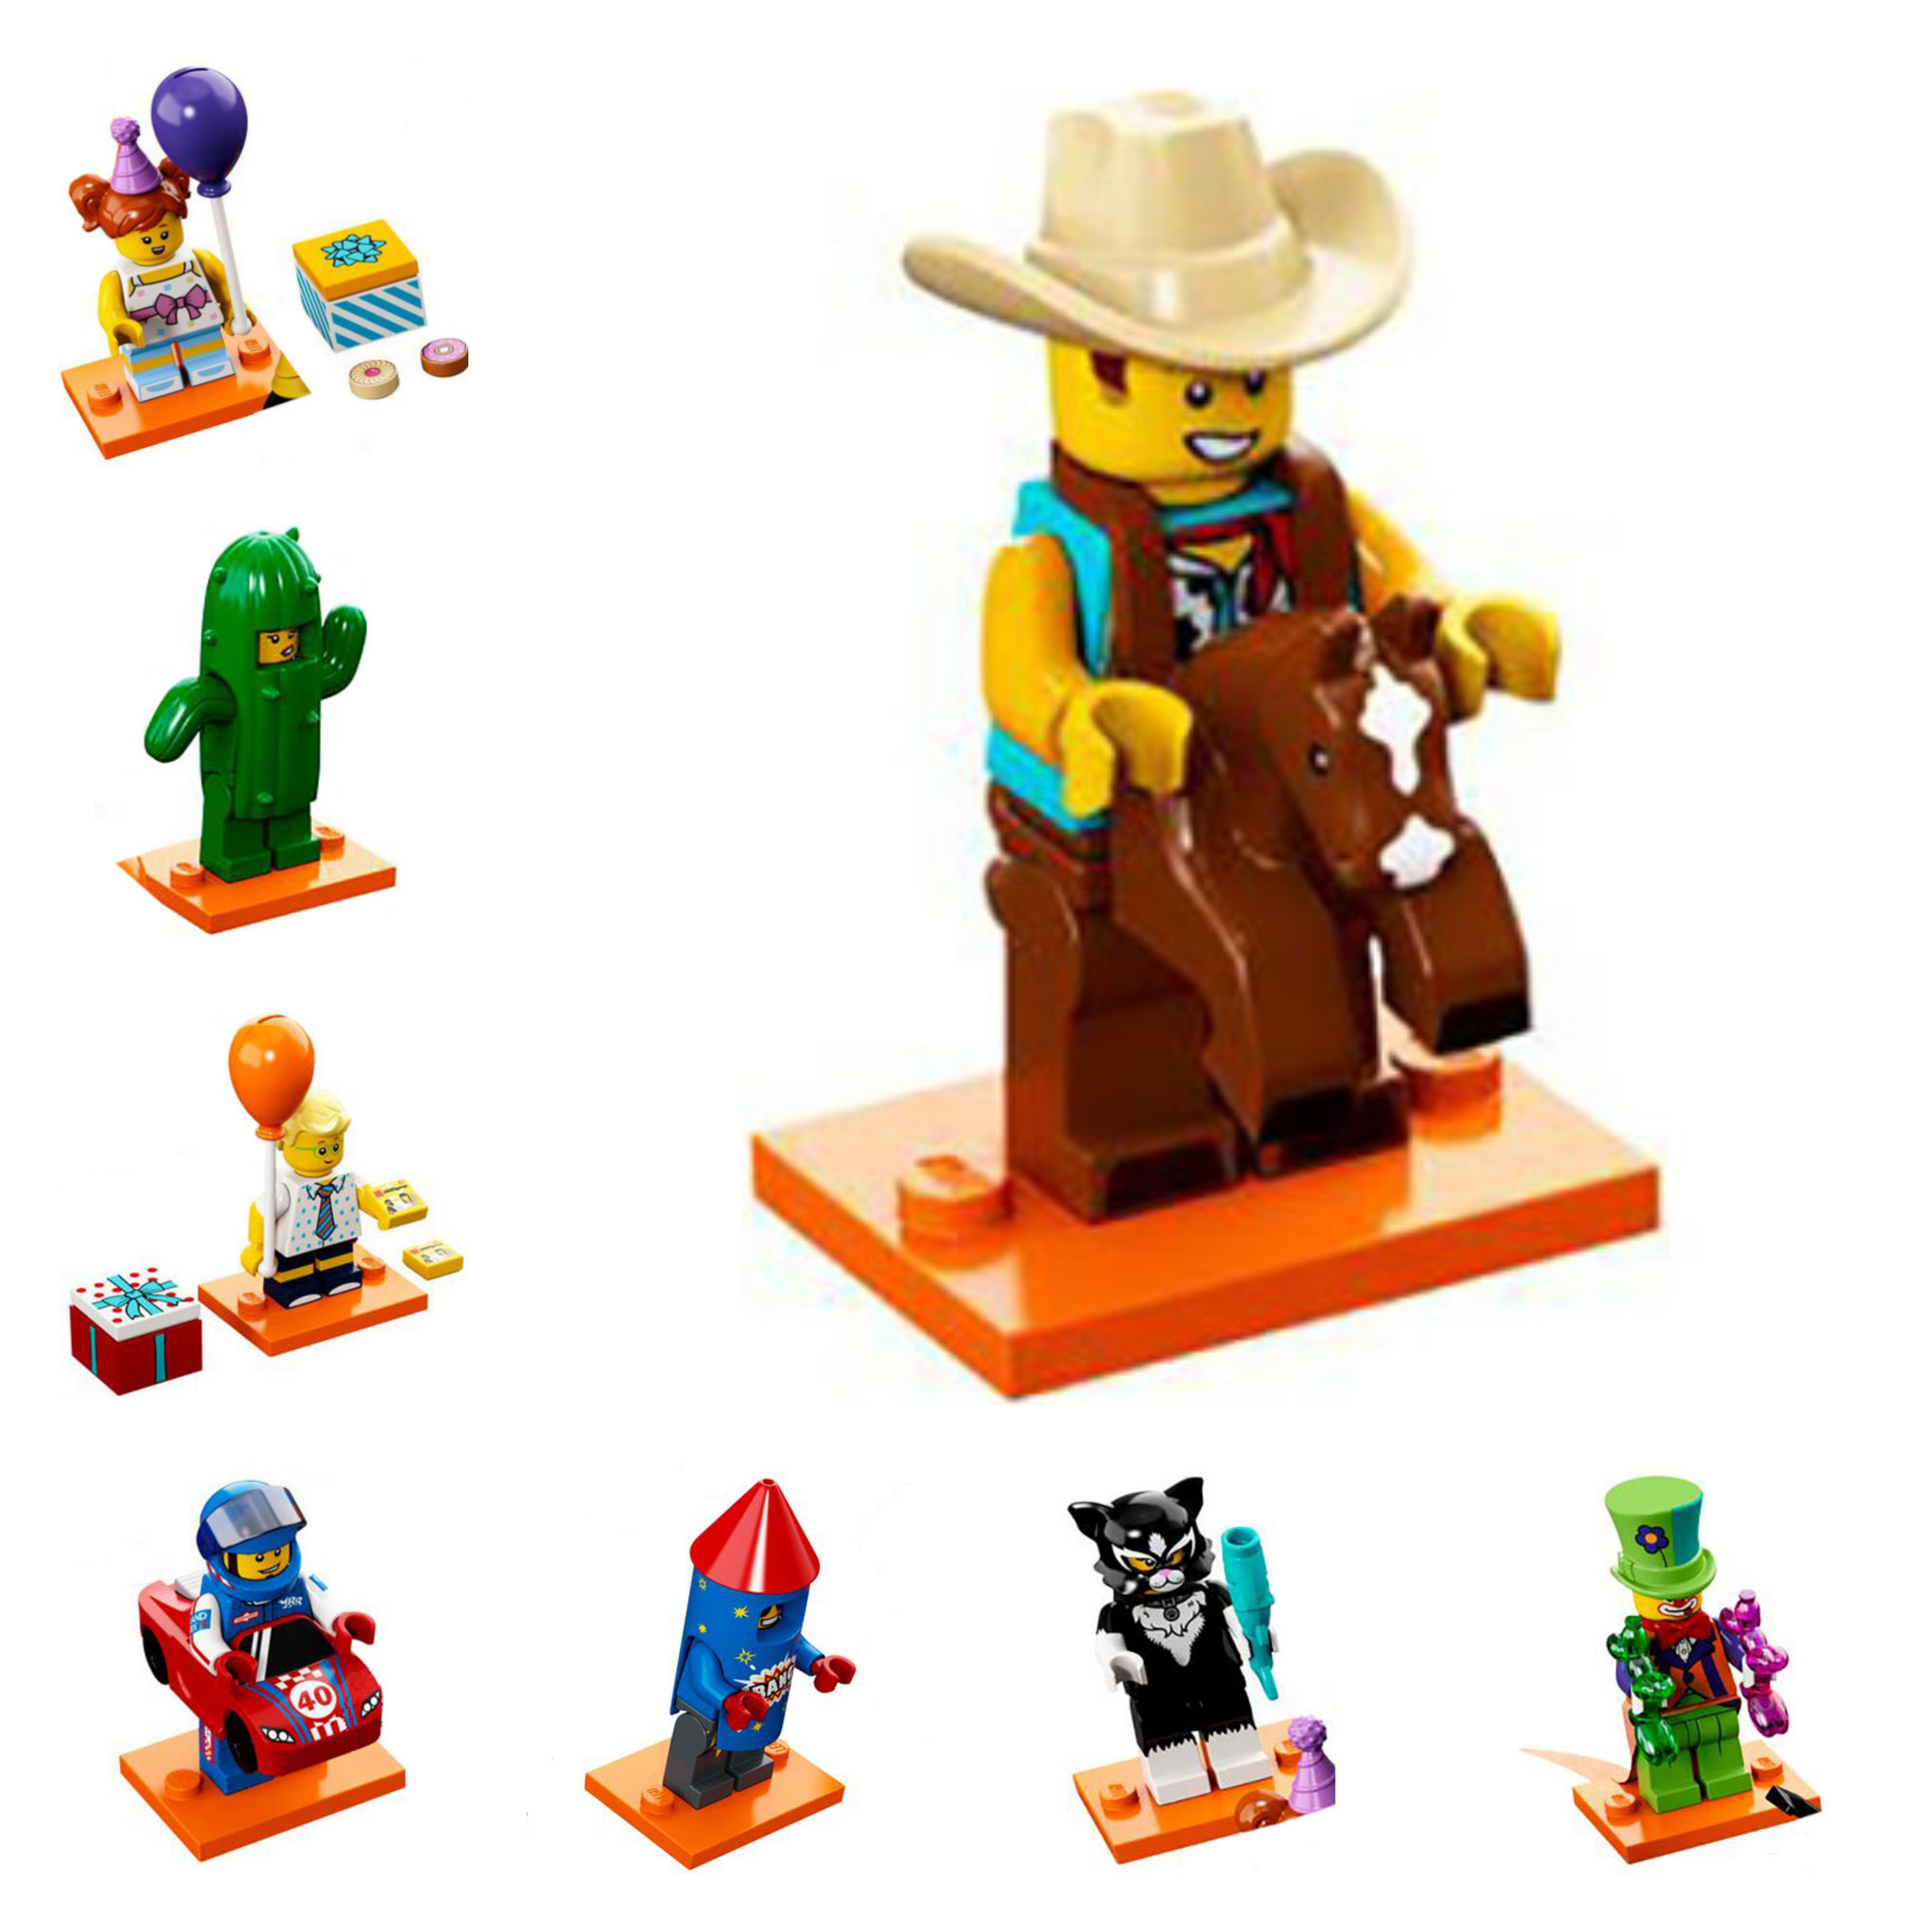 First photos of the costume party-themed LEGO Minifigures ...